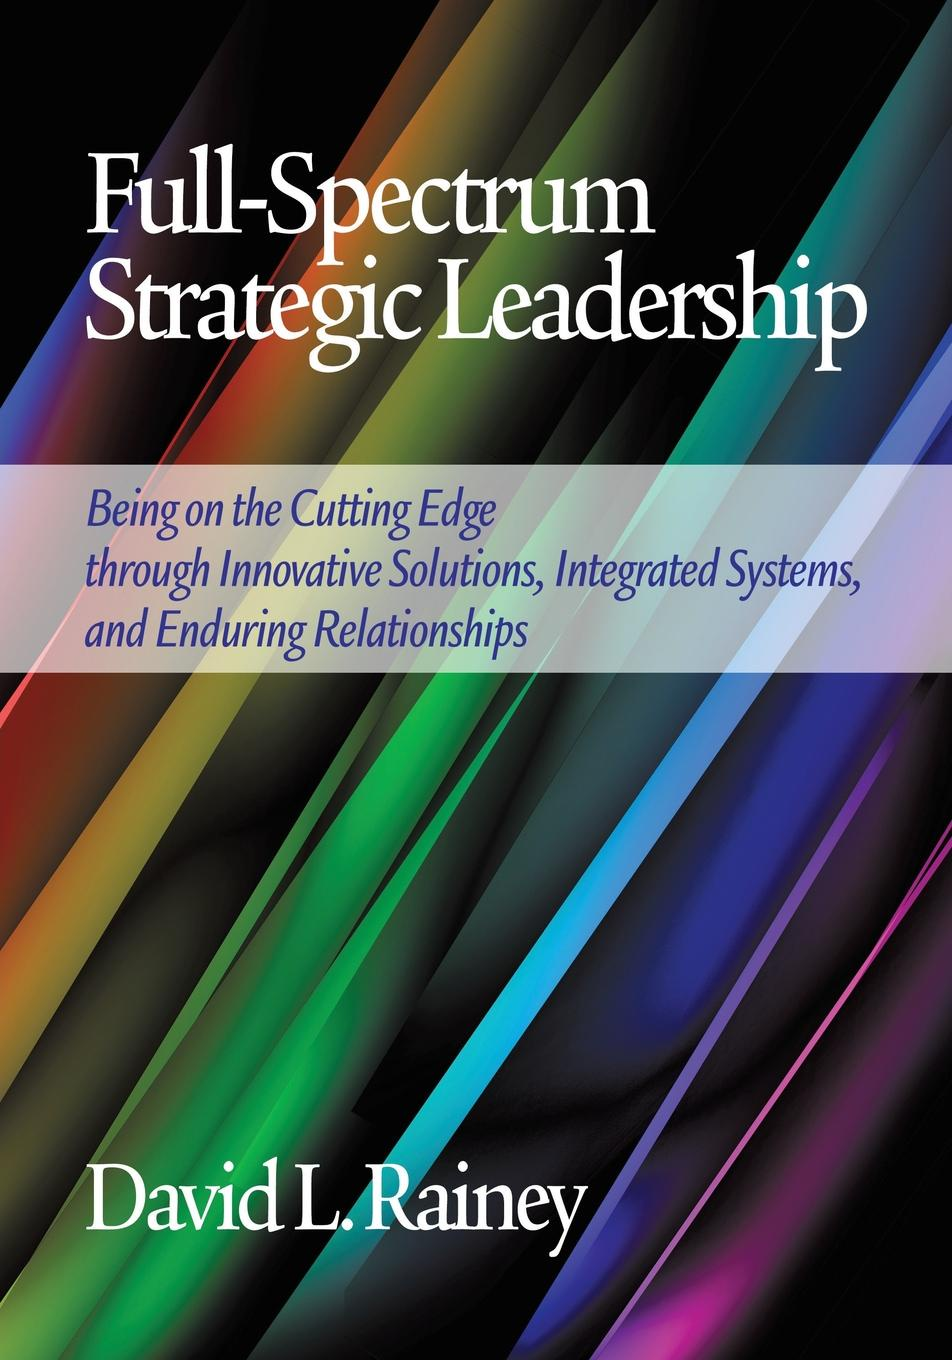 David L. Rainey Full-Spectrum Strategic Leadership. Being on the Cutting Edge Through Innovative Solutions, Integrated Systems, and Enduring Relationships suzanne morse w smart communities how citizens and local leaders can use strategic thinking to build a brighter future